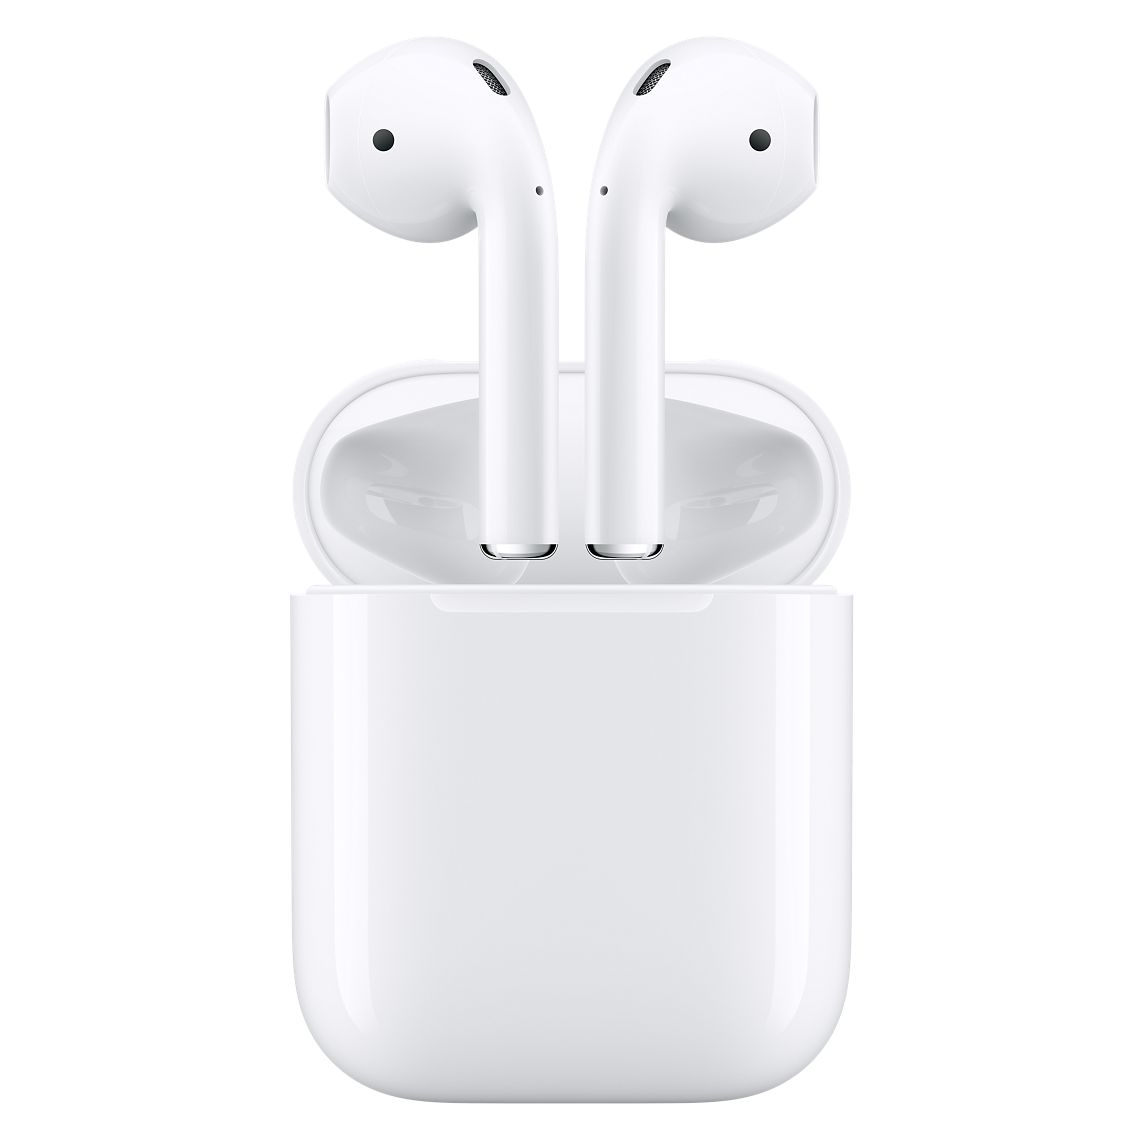 Product Information  Overview  Wireless. Effortless. Magical.  AirPods will forever change the way you use headphones. Whenever you pull your AirPods out of the charging case, they instantly turn on and connect to your iPhone, Apple Watch, iPad, or Mac.(1) Audio automatically plays as soon as you put them in your ears and pauses when you take them out. To adjust the volume, change the song, make a call, or even get directions, just double-tap to activate Siri.  Driven by the custom Apple W1 chip, AirPods use optical sensors and a motion accelerometer to detect when they're in your ears. Whether you're using both AirPods or just one, the W1 chip automatically routes the audio and engages the microphone. And when you're on a call or talking to Siri, an additional accelerometer works with beamforming microphones to filter out background noise and focus on the sound of your voice. Because the ultralow-power W1 chip manages battery life so well, AirPods deliver an industry-leading 5 hours of listening time on one charge.(2) And they're made to keep up with you, thanks to a charging case that holds multiple additional charges for more than 24 hours of listening time.(3) Need a quick charge? Just 15 minutes in the case gives you 3 hours of listening time.(4)  Highlights  Designed by Apple  Automatically on, automatically connected  One-tap setup for all your Apple devices(1)  Quick access to Siri with a double-tap  More than 24-hour battery life with Charging Case(3)  Charges quickly in the case  Rich, high-quality audio and voice  Seamless switching between devices  Tech Specs  Bluetooth  Wireless  Weight  AirPods (each): 0.14 ounces (4 g)  Charging Case: 1.34 ounces (38 g)  Dimensions  AirPods (each): 0.65 by 0.71 by 1.59 inches (16.5 by 18.0 by 40.5 mm)  Charging Case: 1.74 by 0.84 by 2.11 inches (44.3 by 21.3 by 53.5 mm)  Connections  AirPods: Bluetooth  Charging Case: Lightning connector  AirPods Sensors (each):  Dual beam-forming microphones  Dual optical sensors  Mo